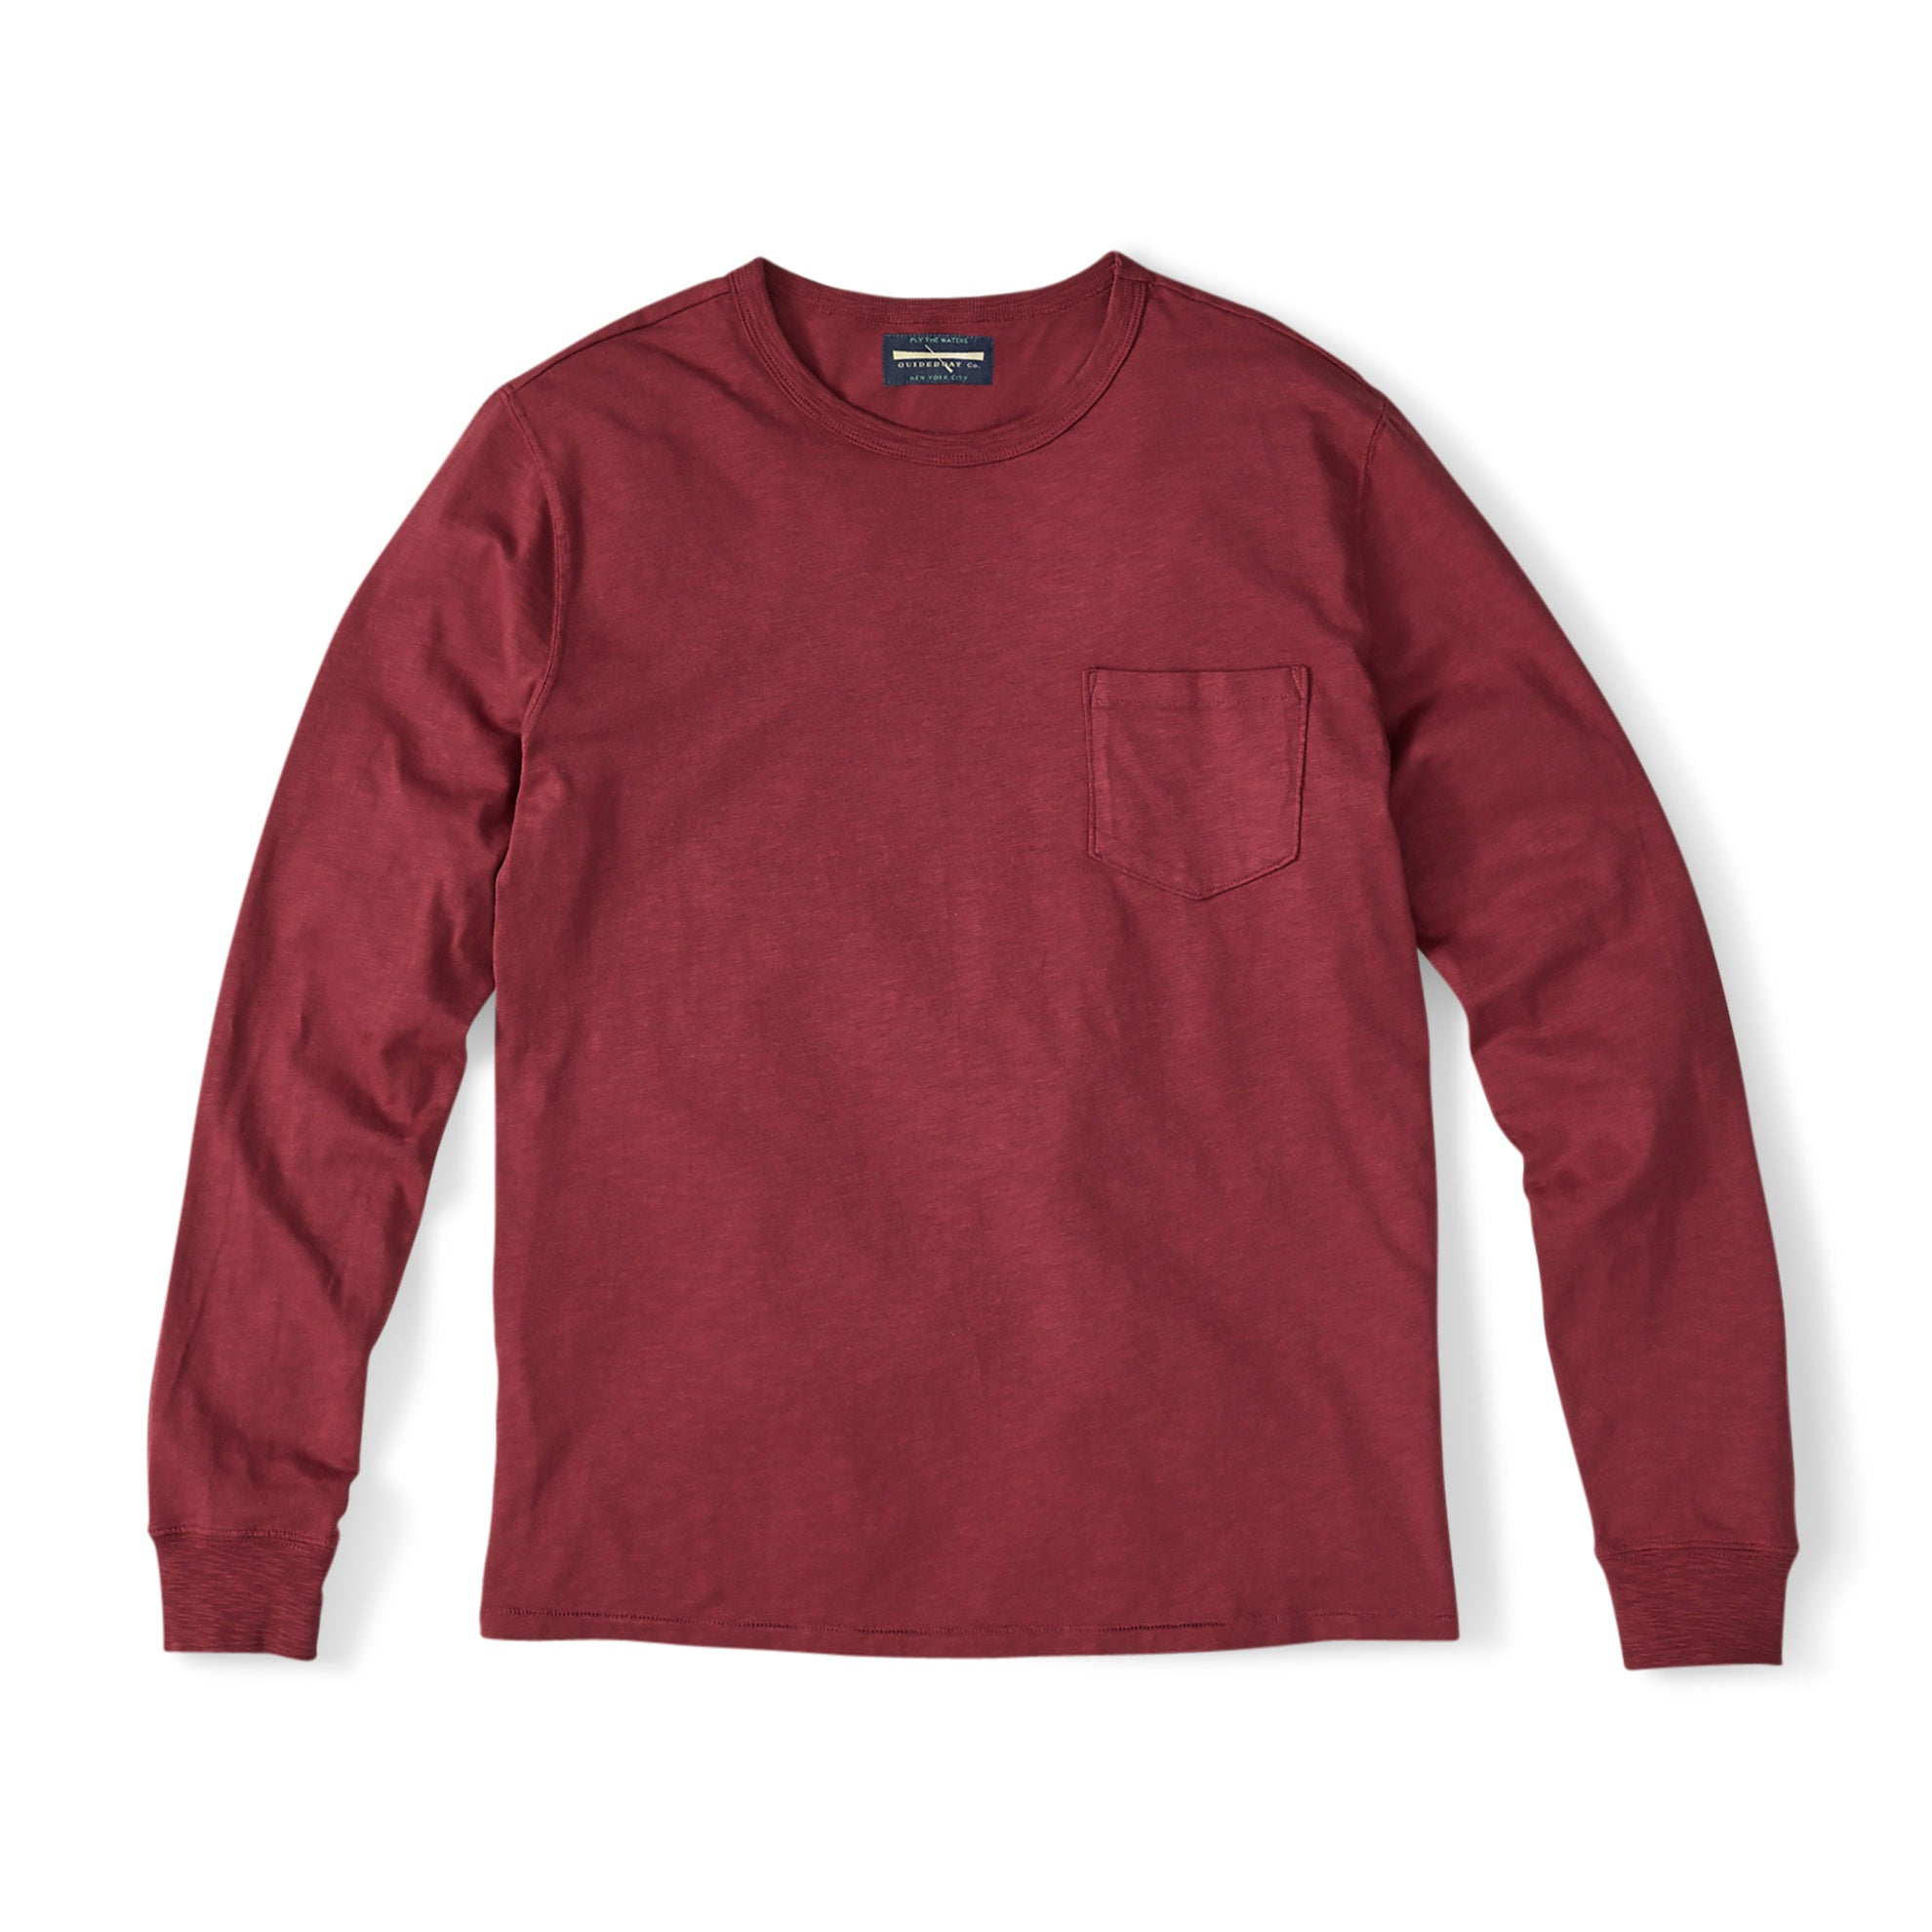 Long-Sleeve Garment-Dyed Tee